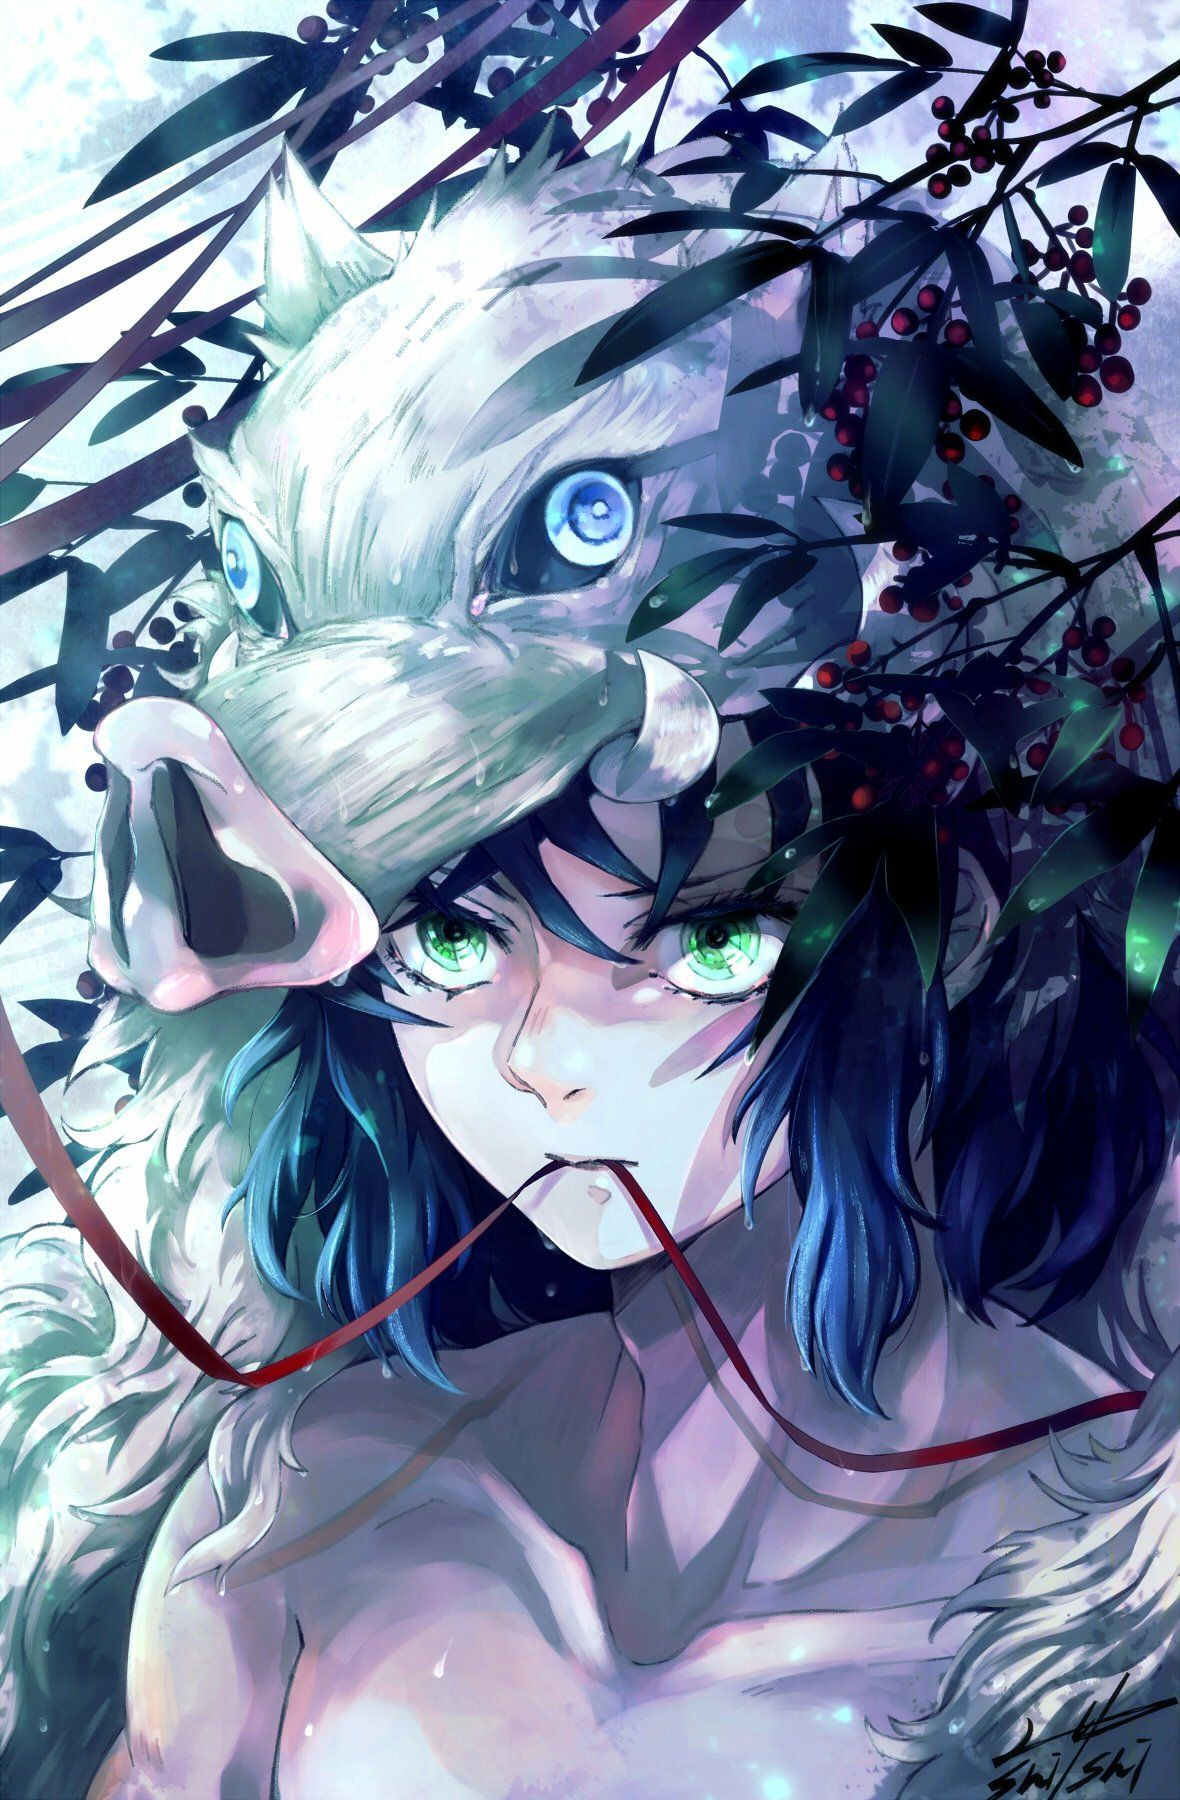 Pin by +ZENA+ on 鬼滅の刃 (With images) Anime demon, Slayer